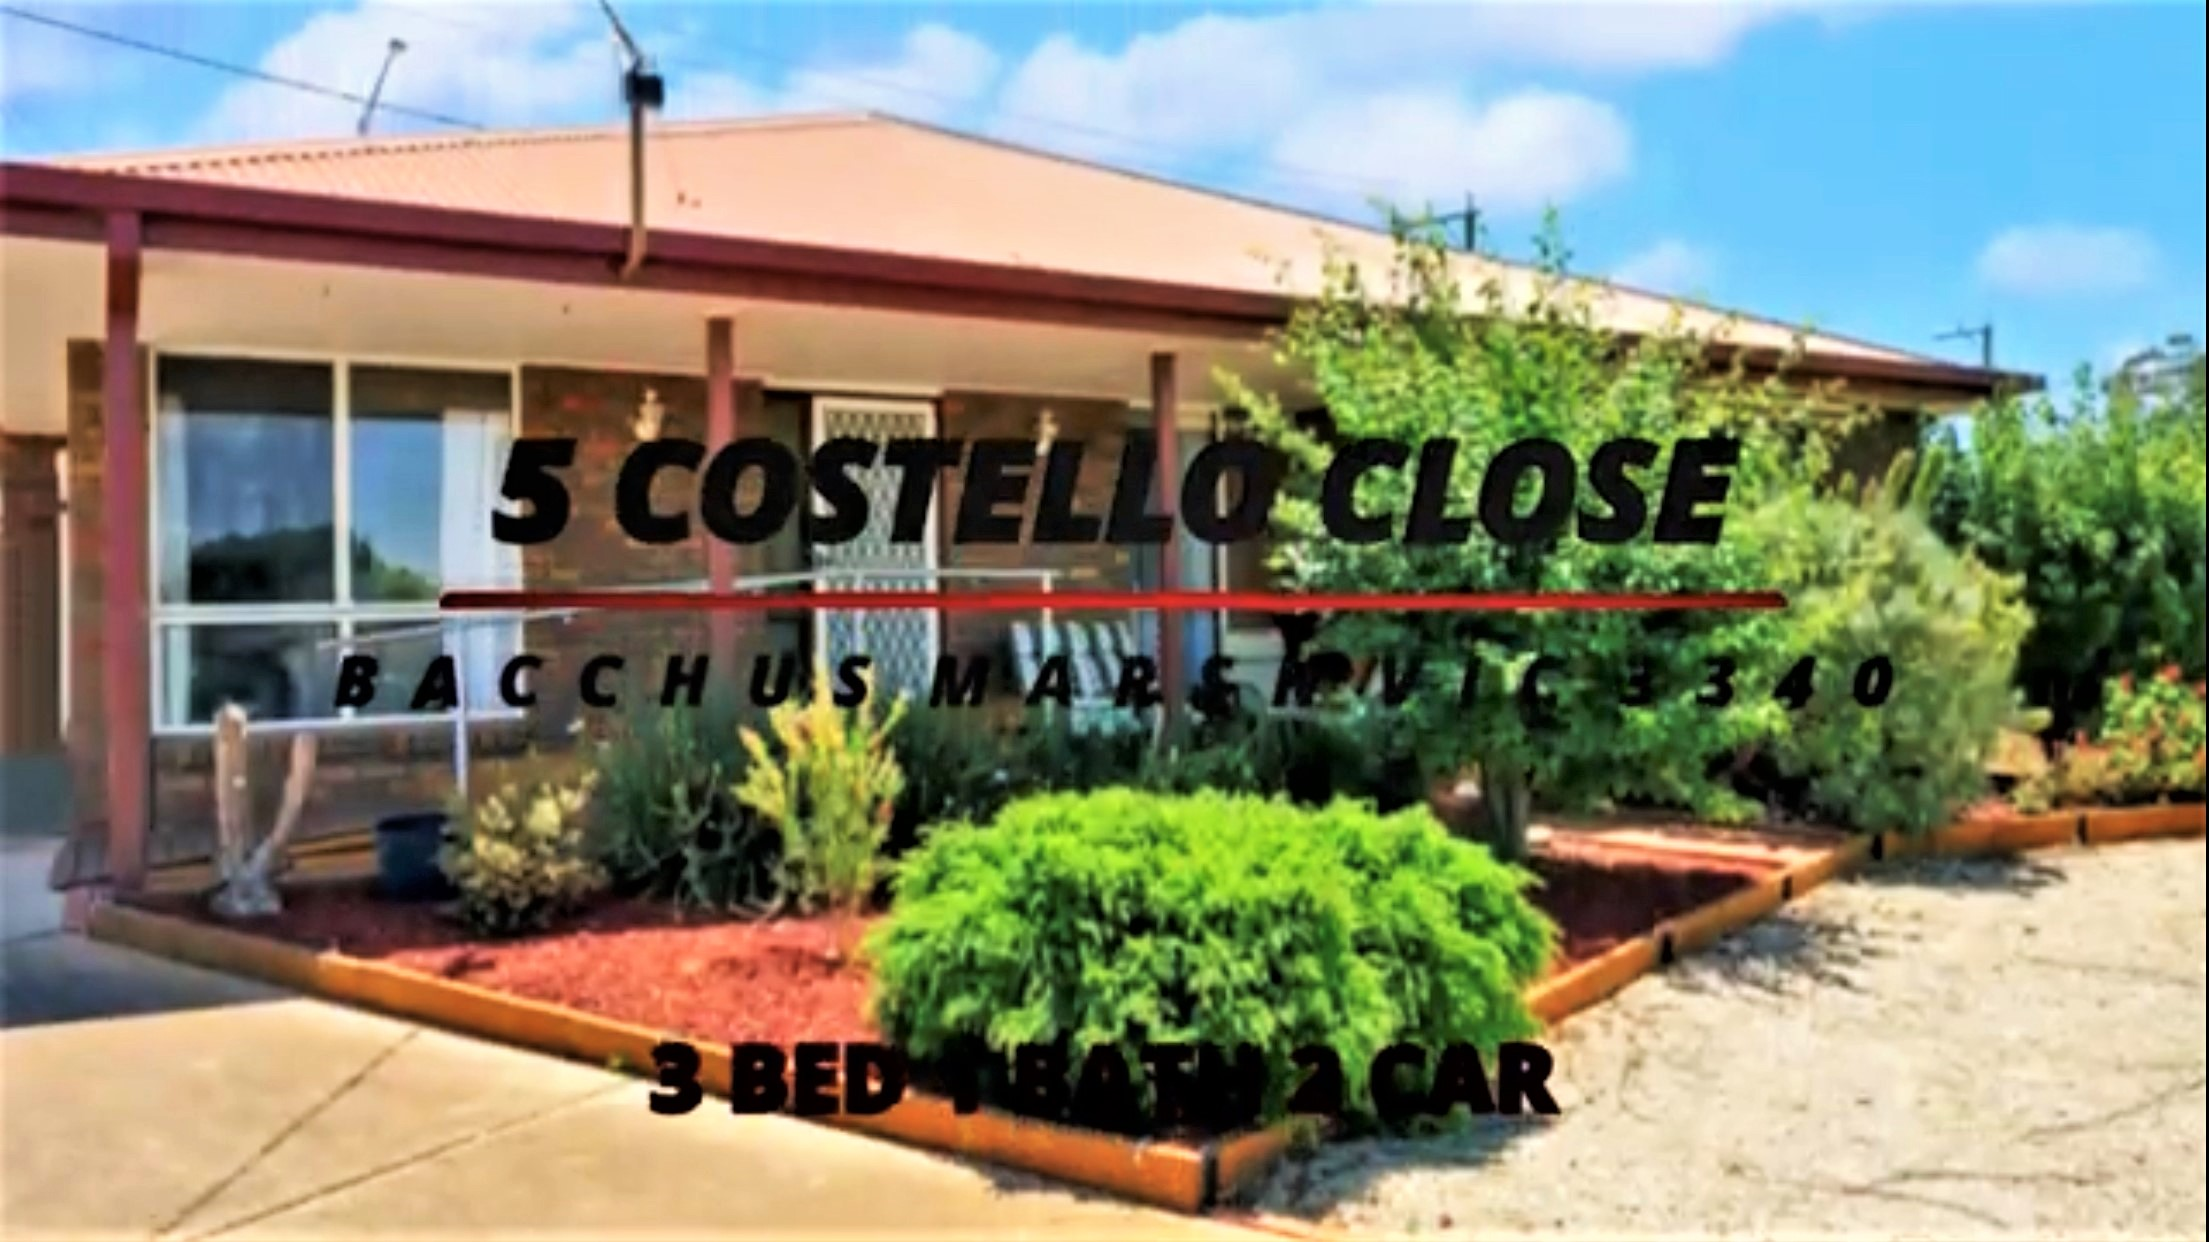 The story behind the sale of 5 Costello Close, Bacchus Marsh VIC 3340